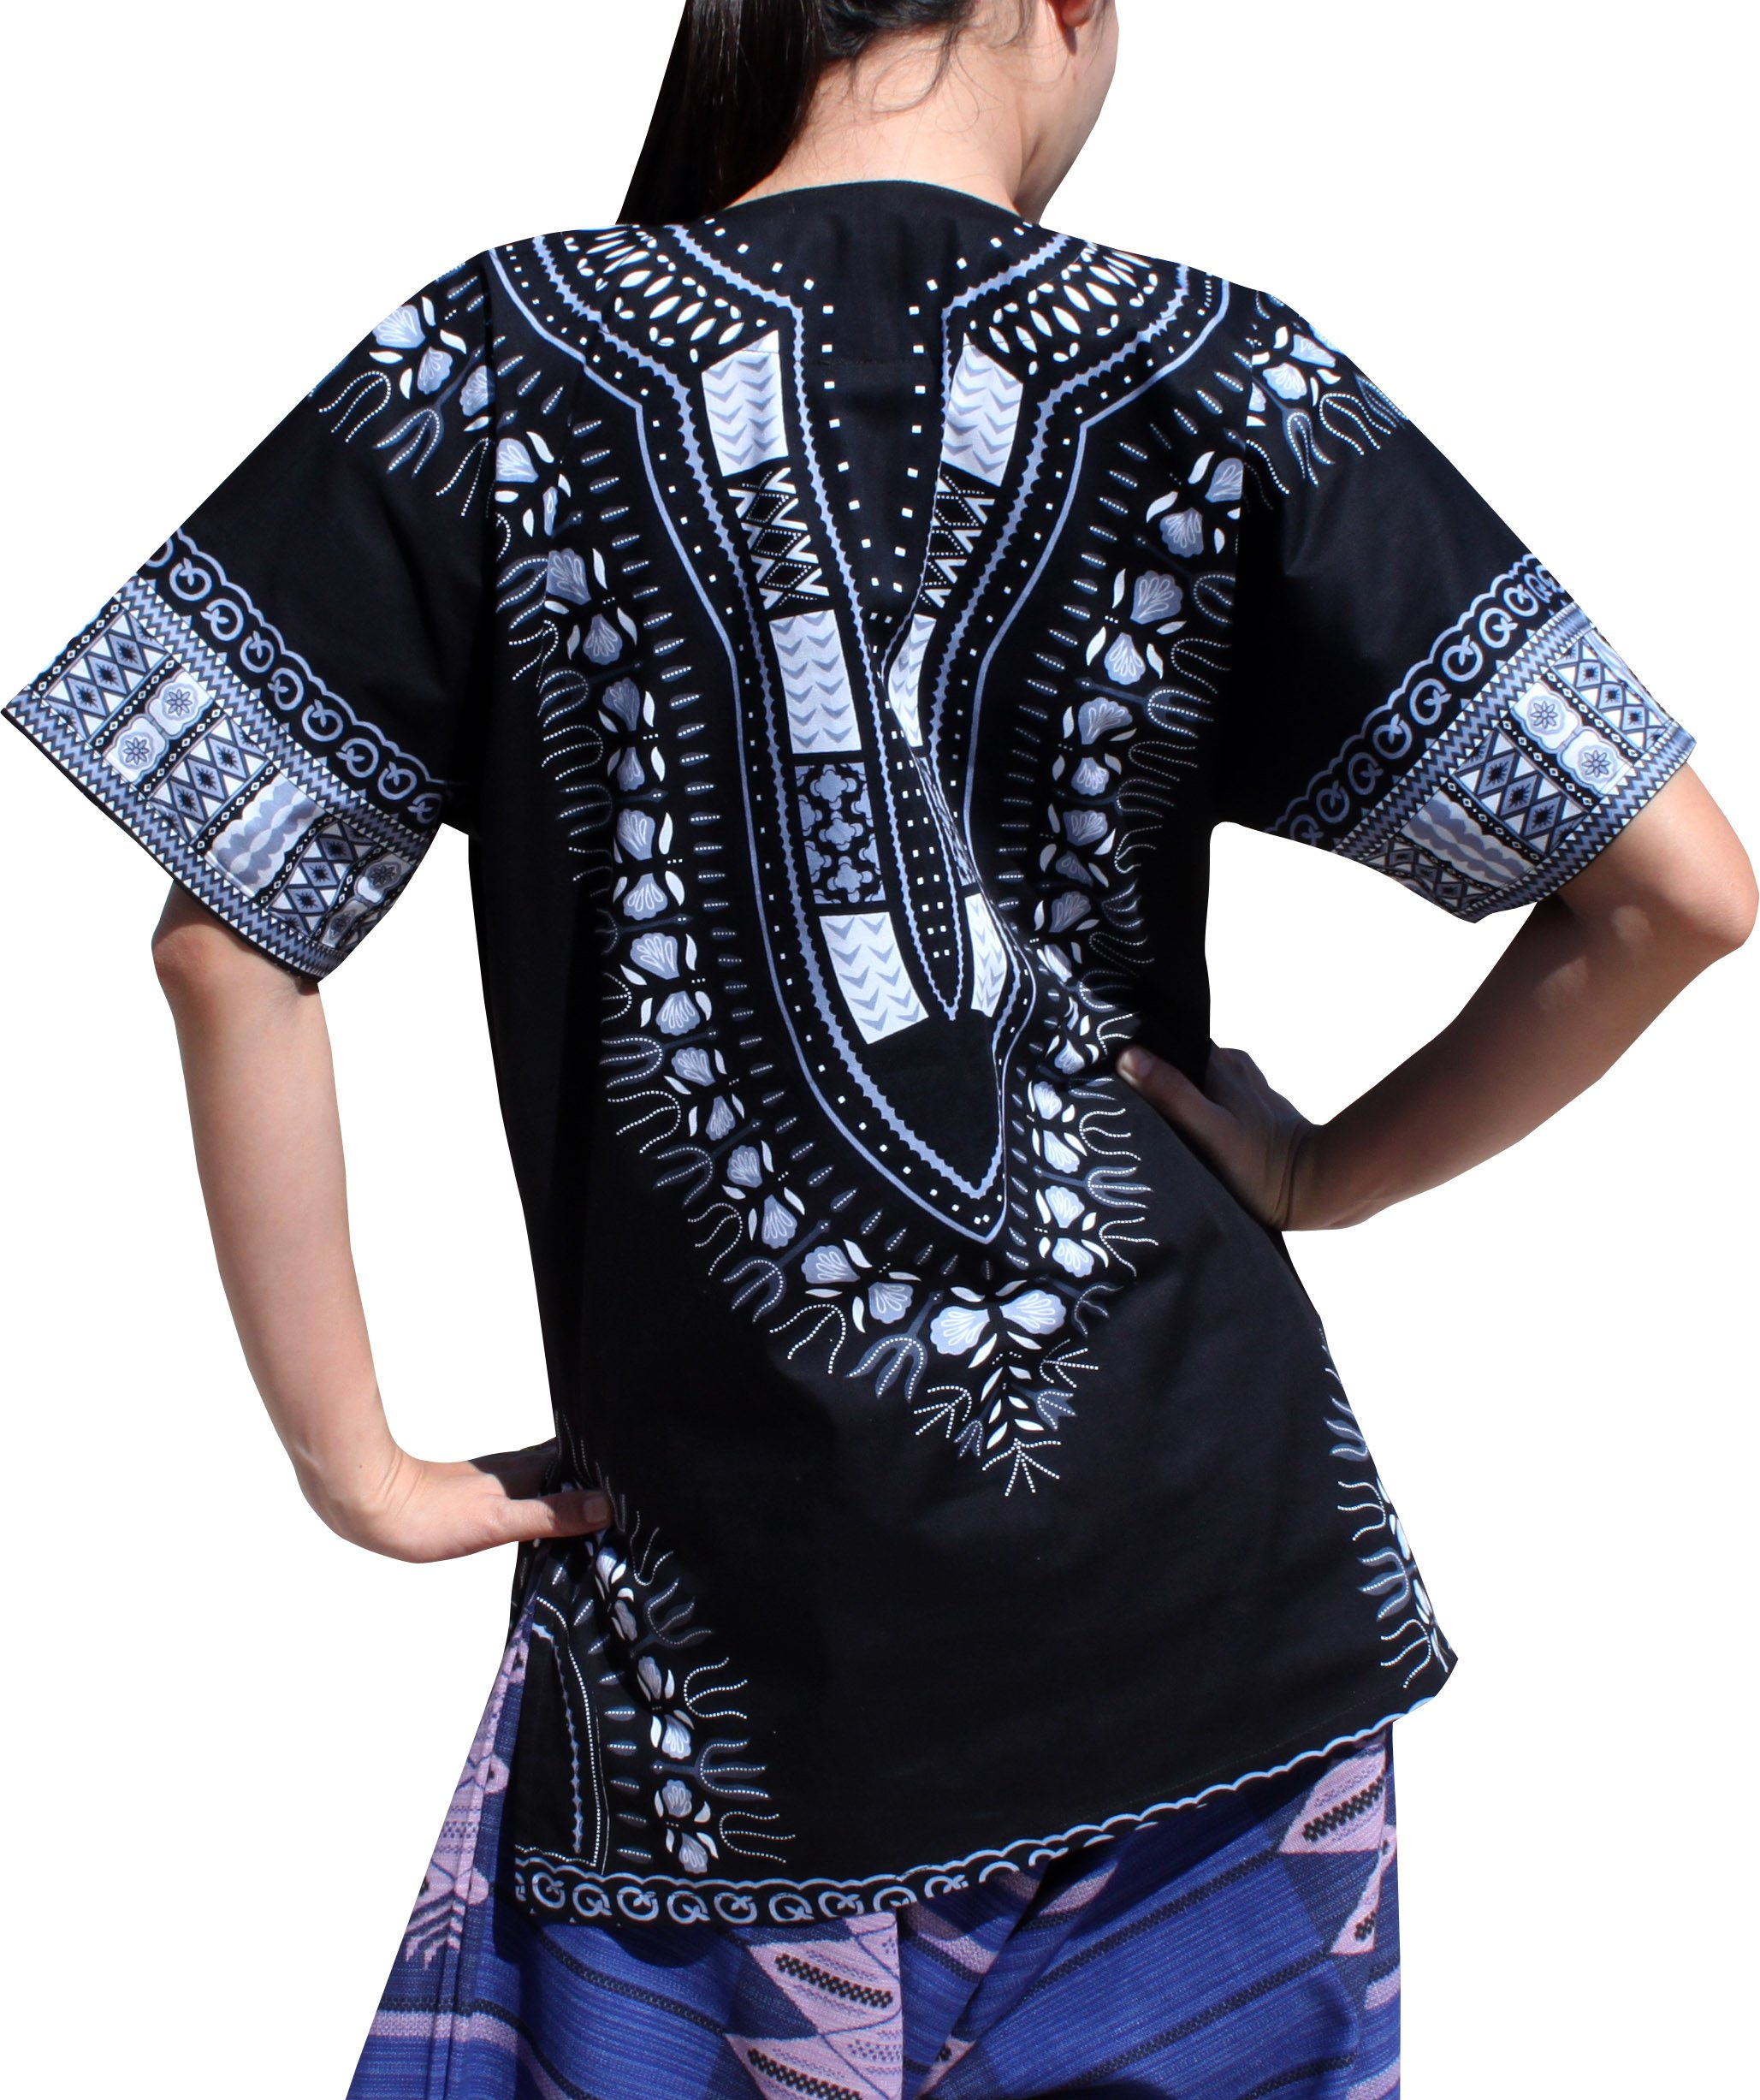 RaanPahMuang Traditional African Dashiki Shirt In Light Thin Grade Batik Cotton, Large, Black/Gray by RaanPahMuang (Image #2)